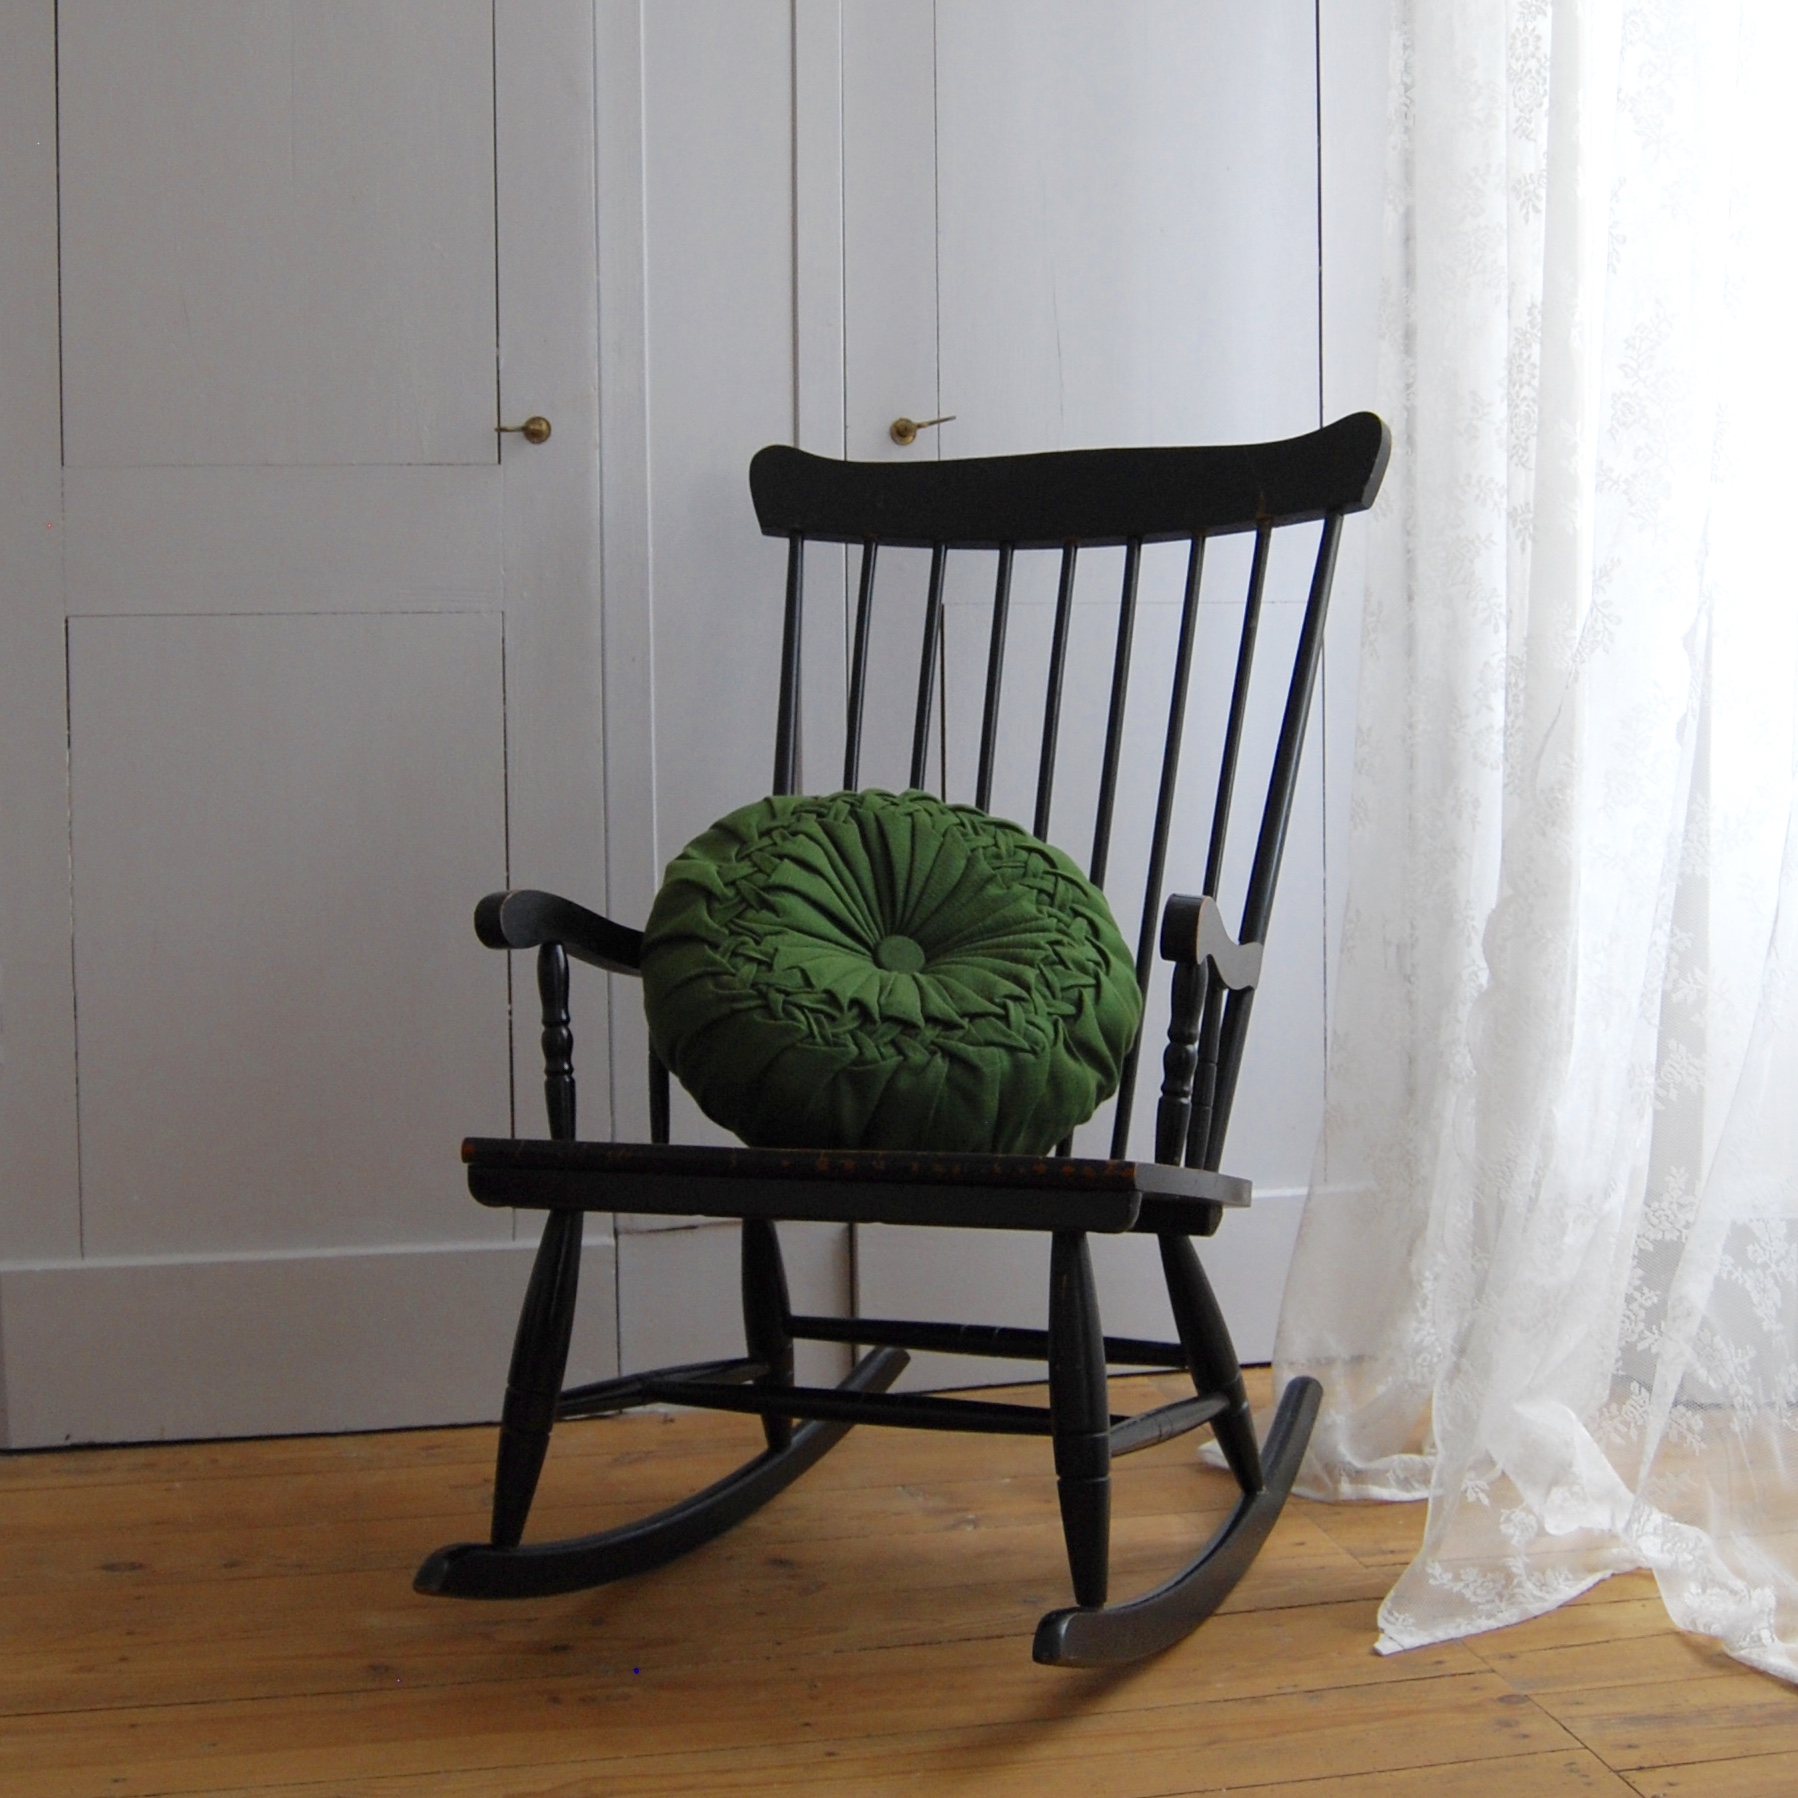 Rocking Chair Noir En Bois Brocante Avenue